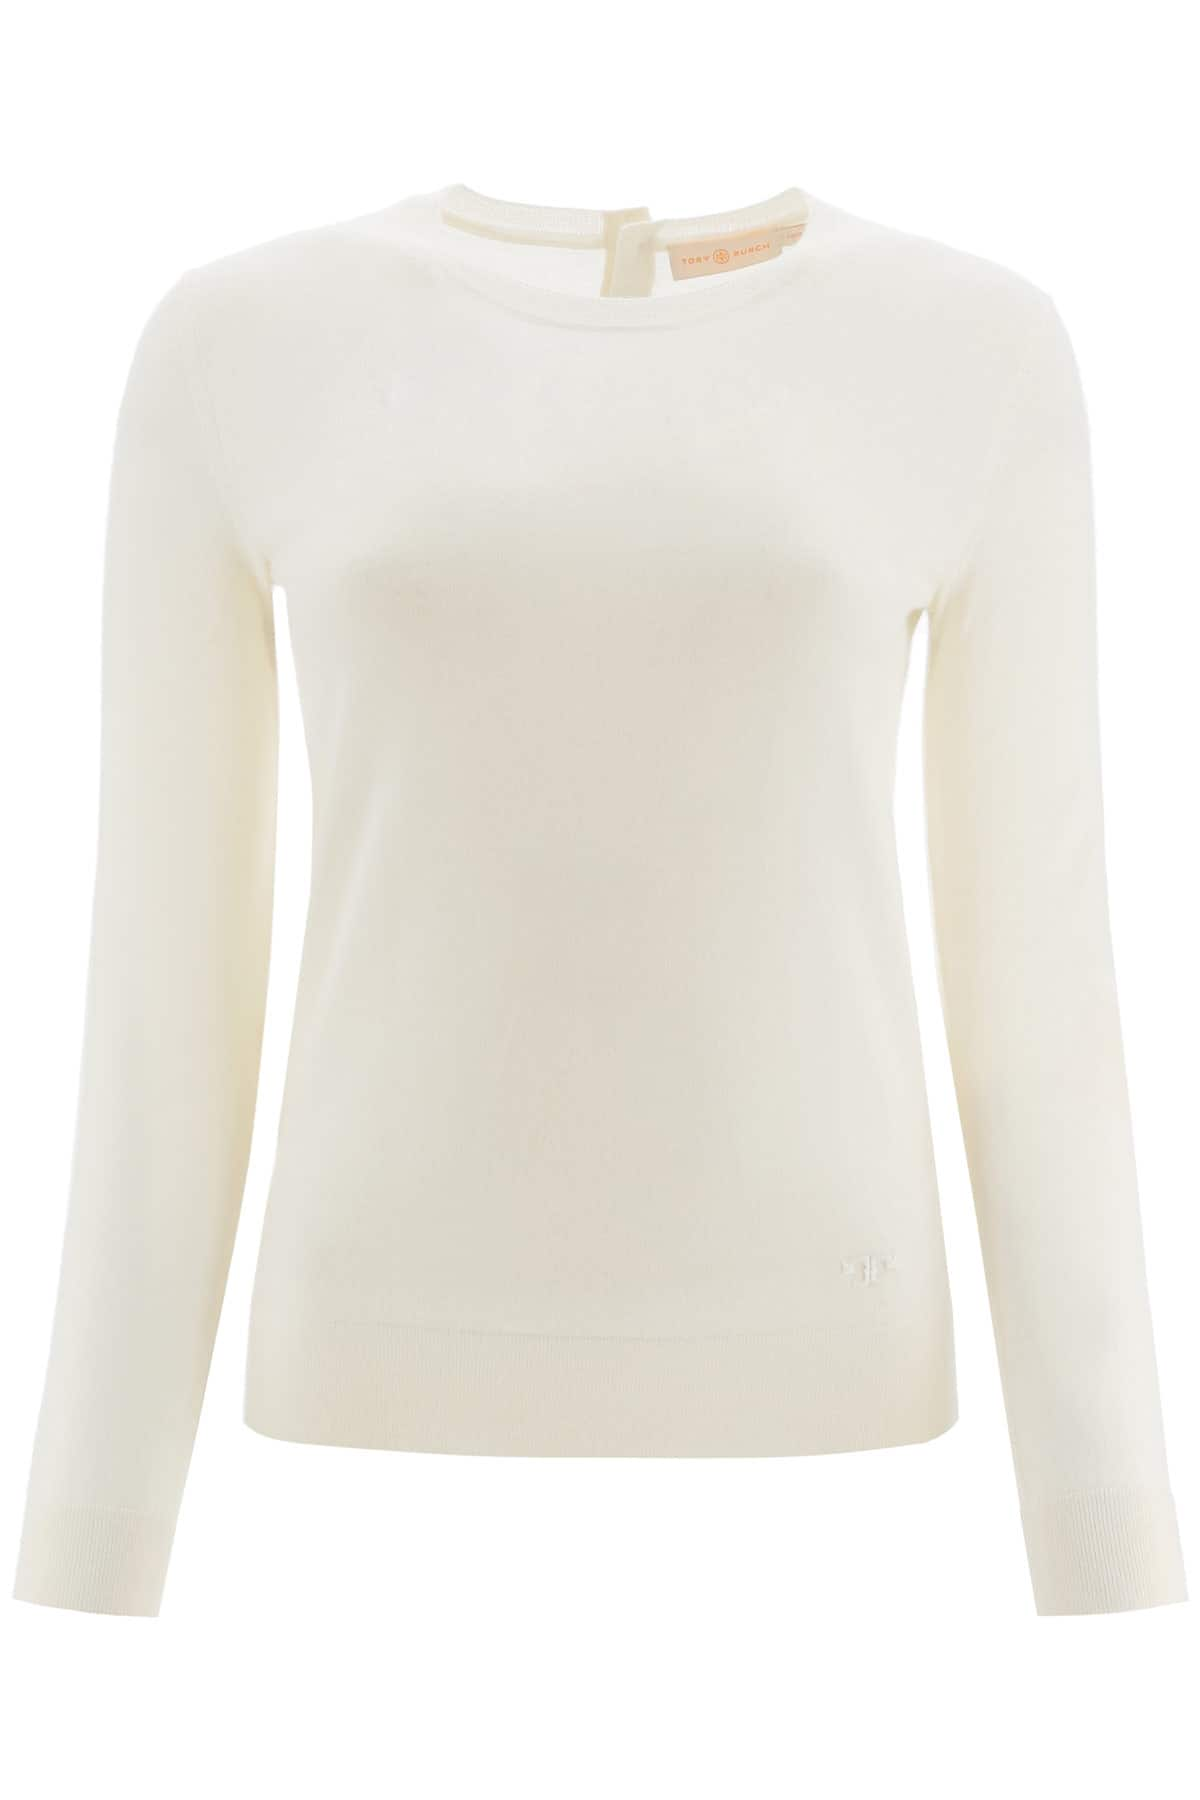 TORY BURCH CASHMERE SWEATER WITH LOGO BUTTONS S White Cashmere